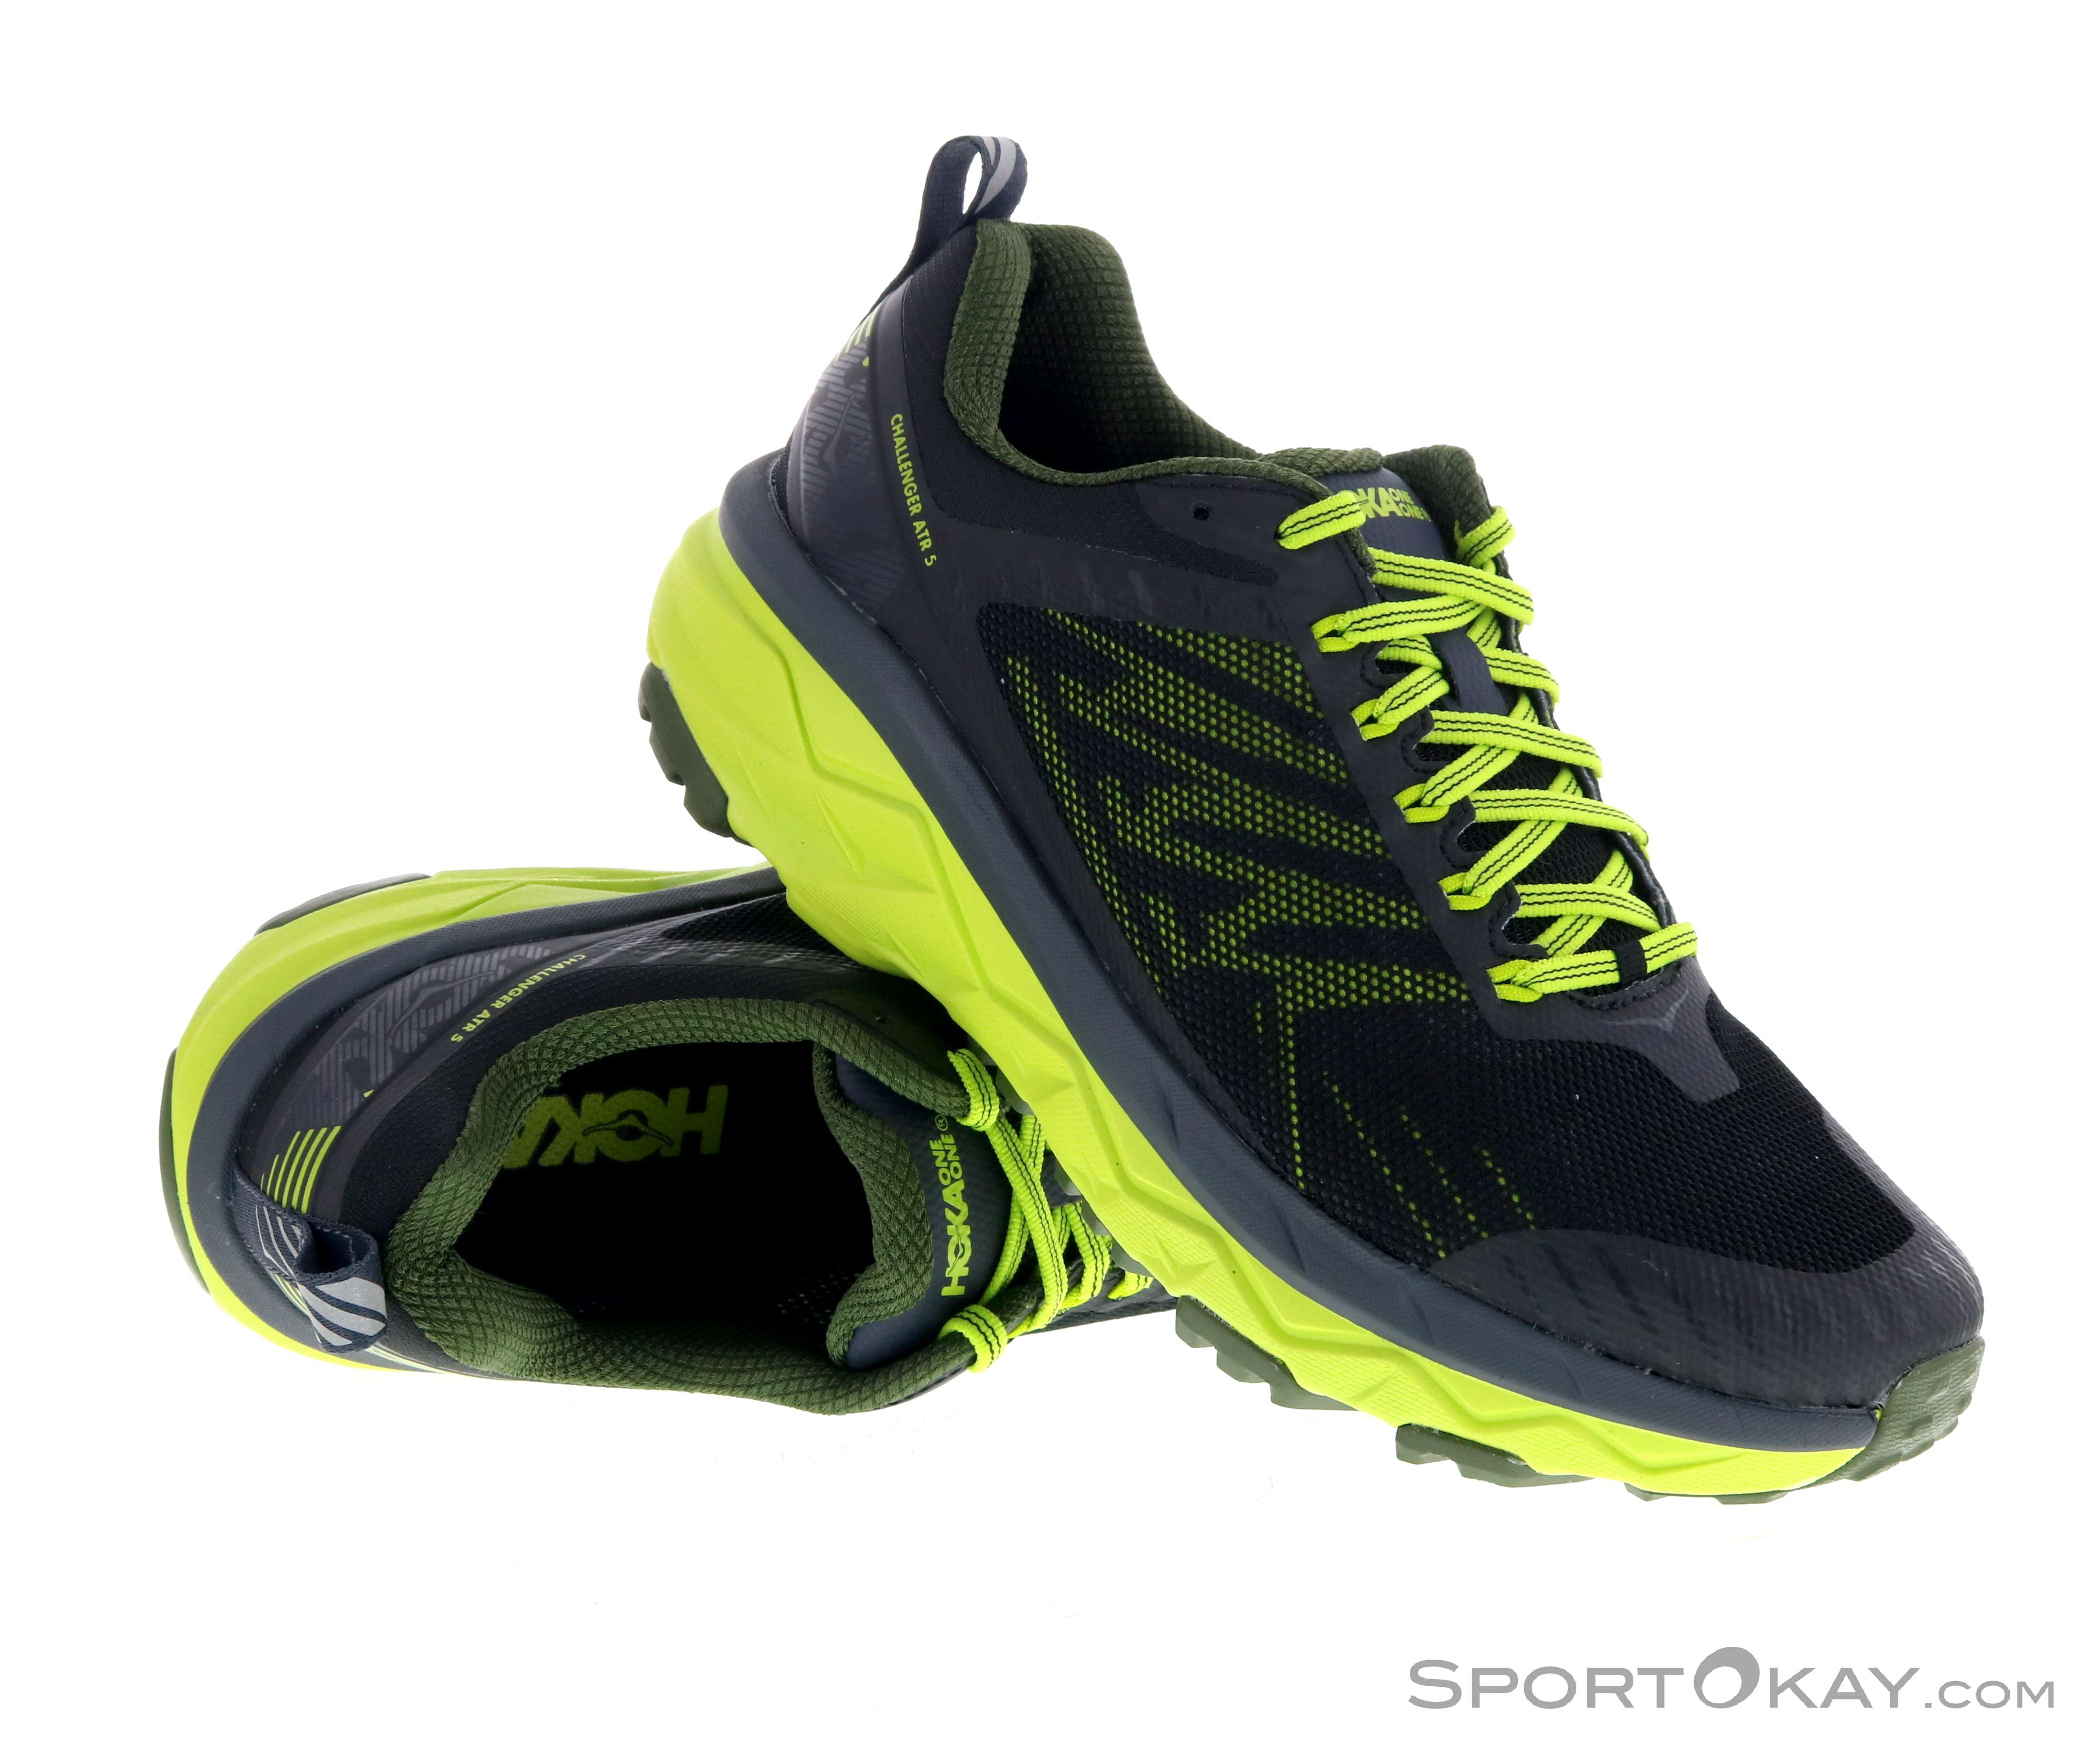 Hoka One One Challenger ATR 5 Mens Trail Running Shoes All